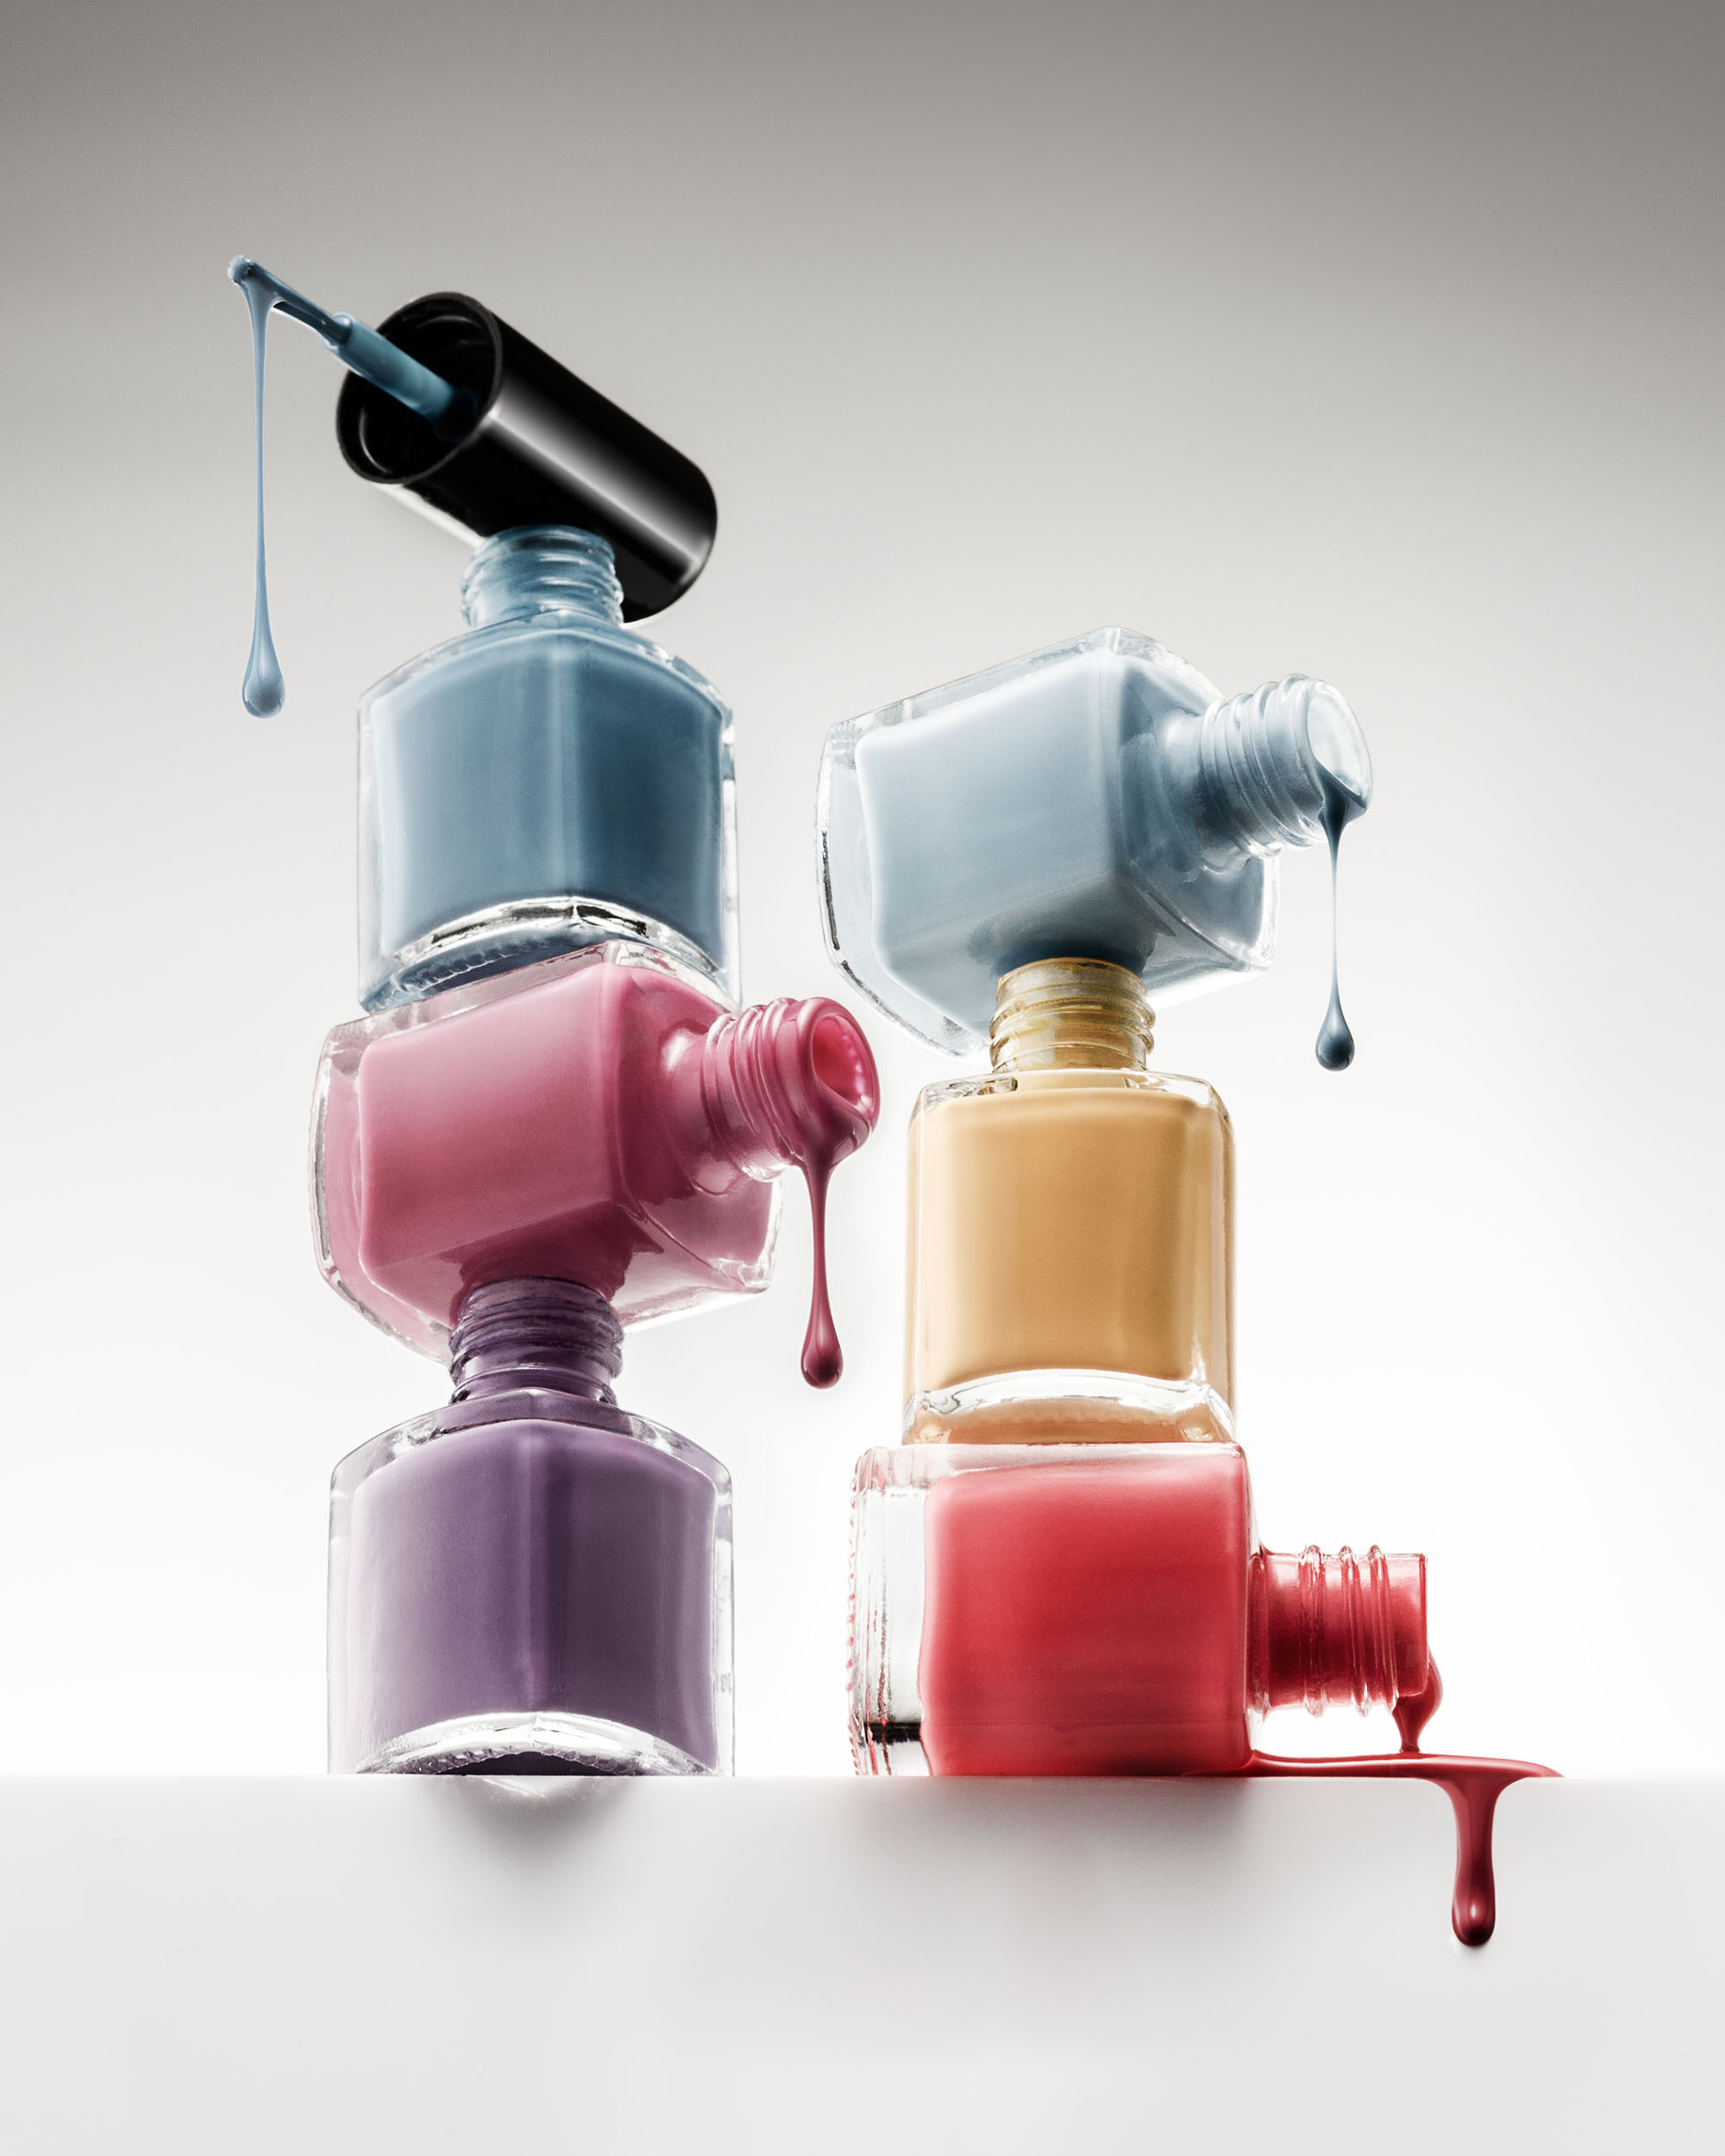 Ian Knaggs Commercial Still Life Photographer - Frozen Nail Polish Drips